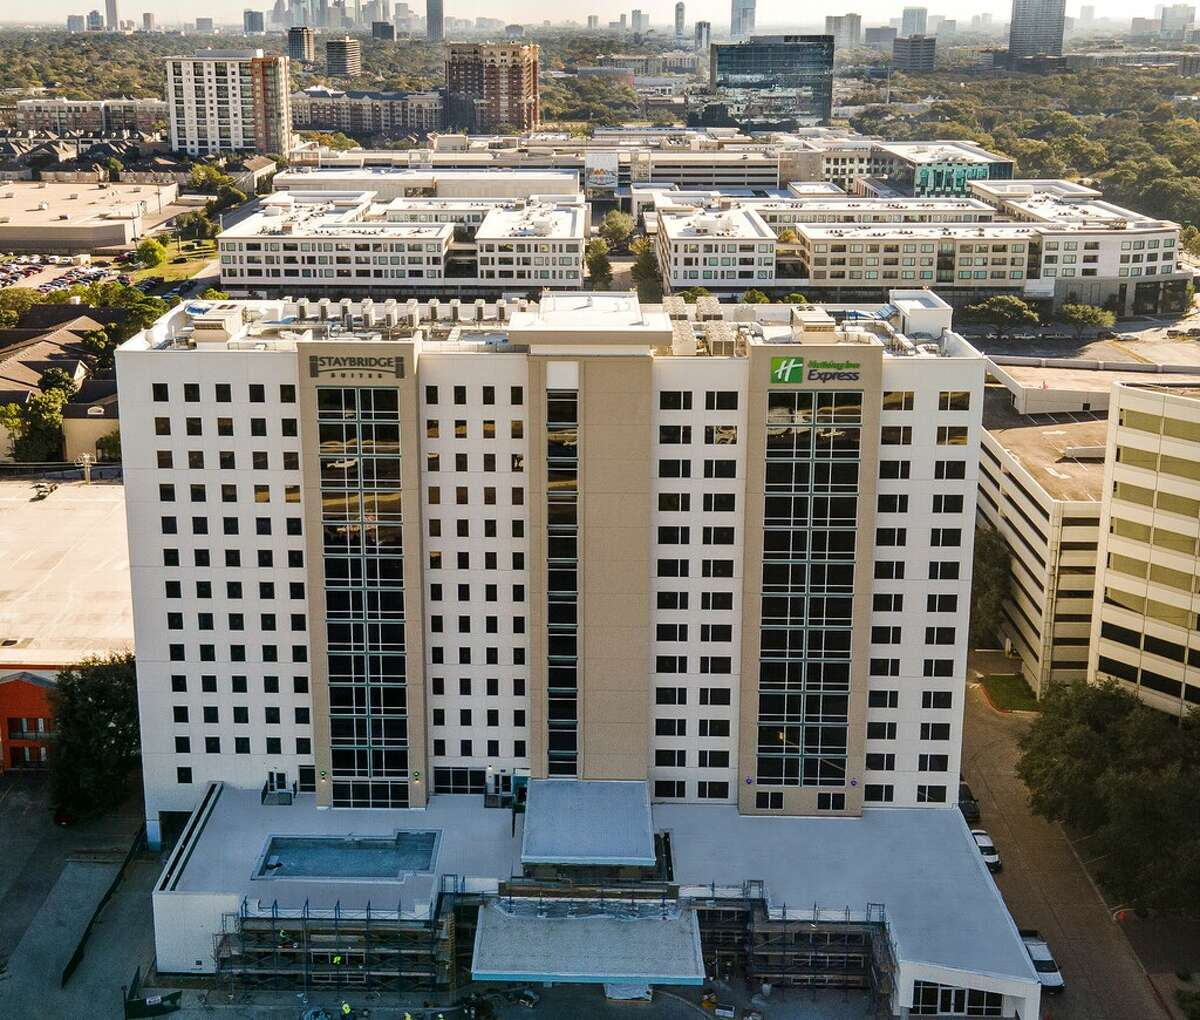 American Liberty Hospitality opened openedHoliday Inn Express Houston - Galleria Area and Staybridge Suites Houston - Galleria Area on Loop 610 between Westheimer and San Felipe.